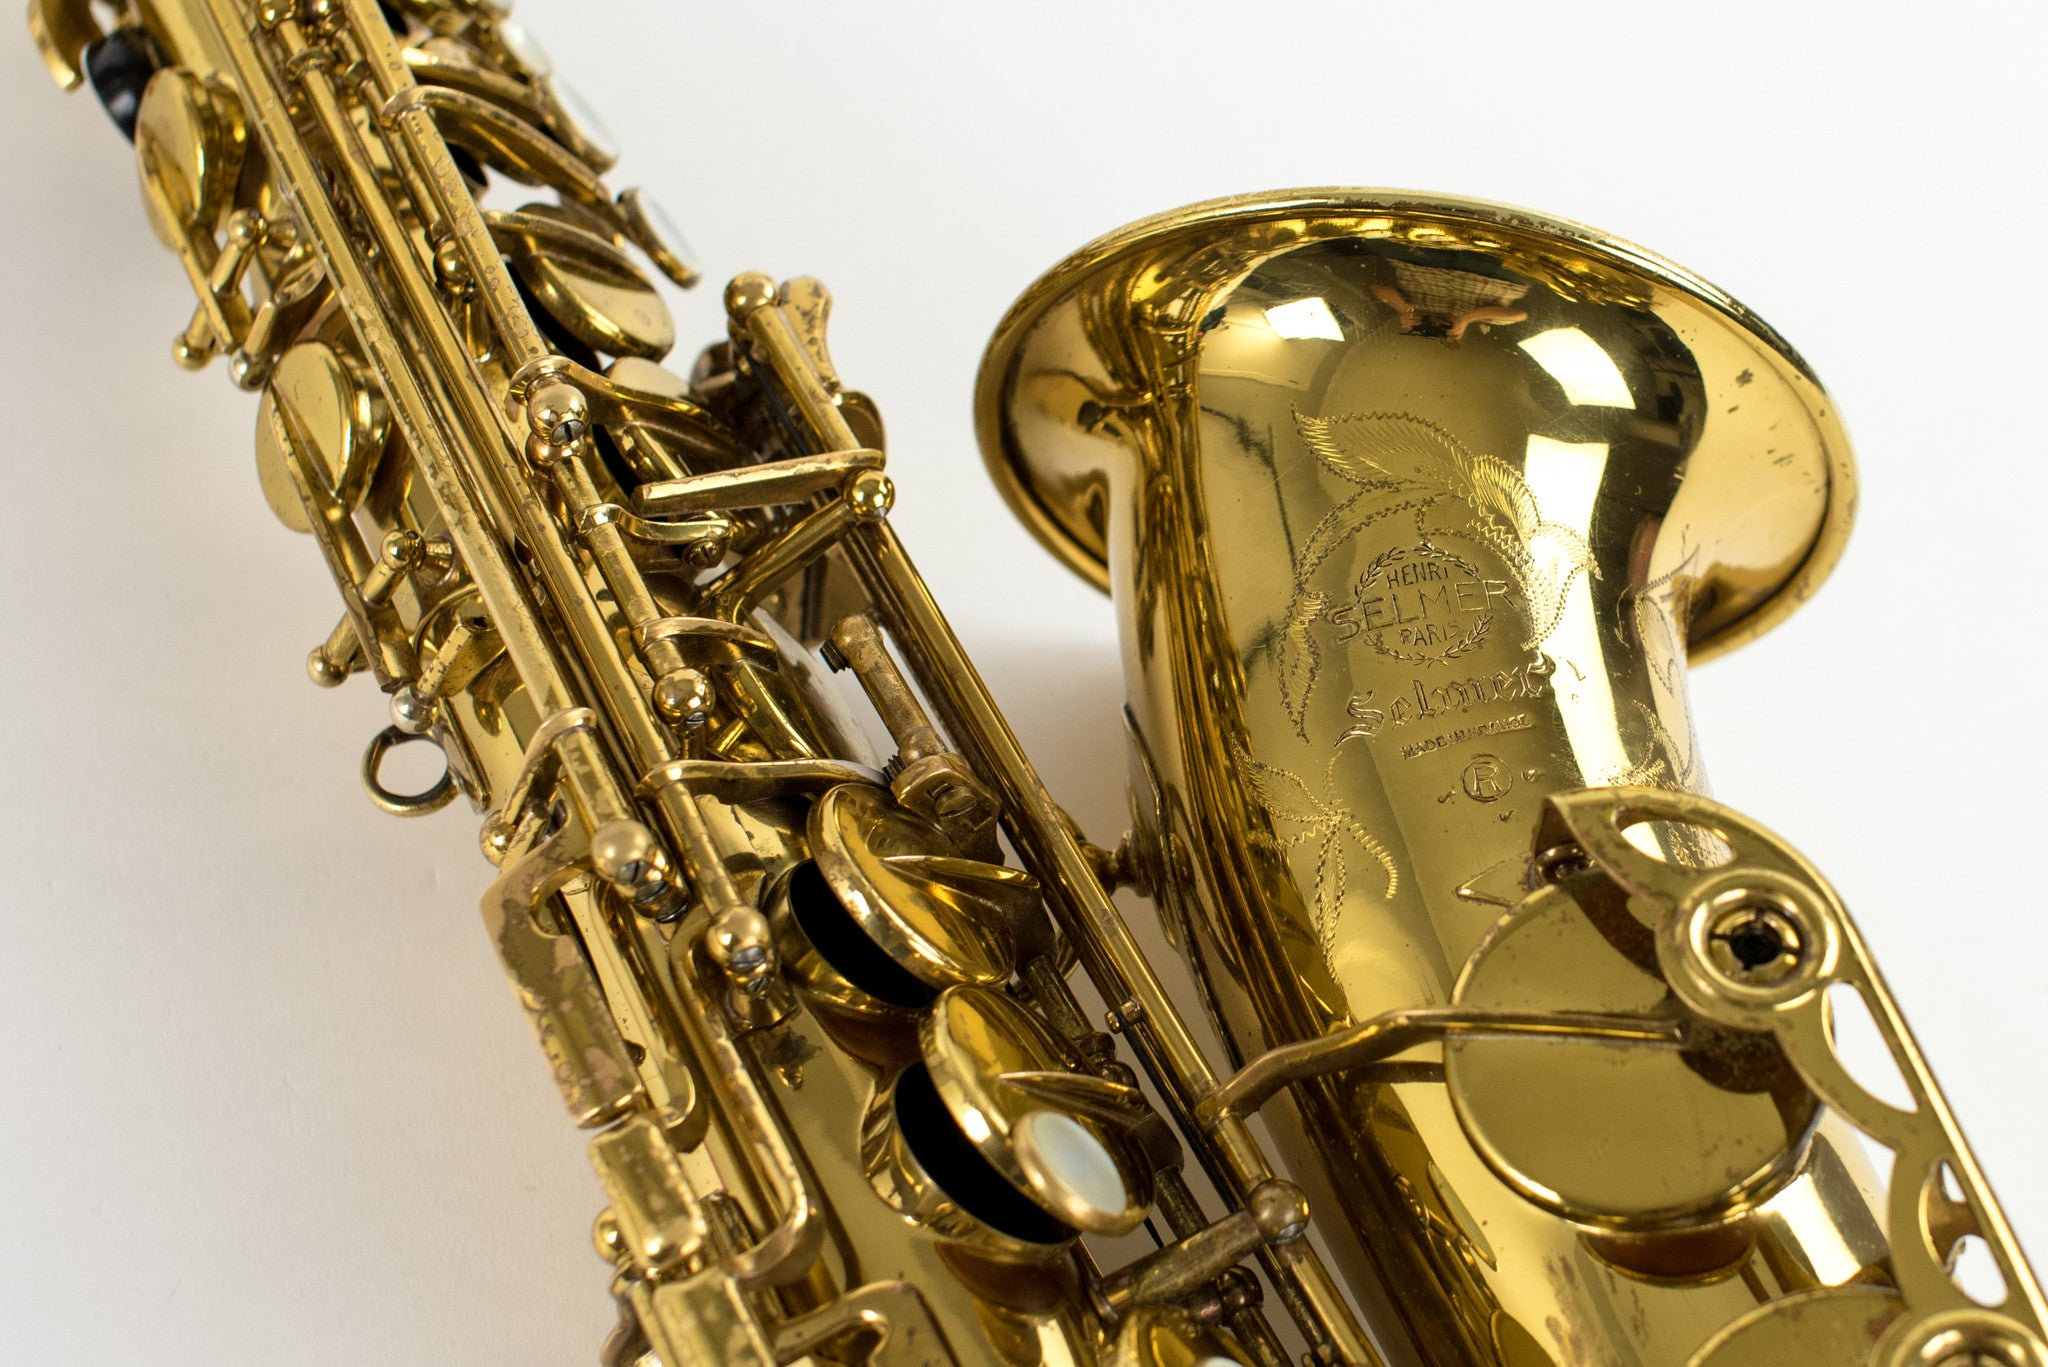 193,xxx Selmer Mark VI Alto Saxophone, Fresh Overhaul, 94% Original Lacquer, Reso-Tech Resonators